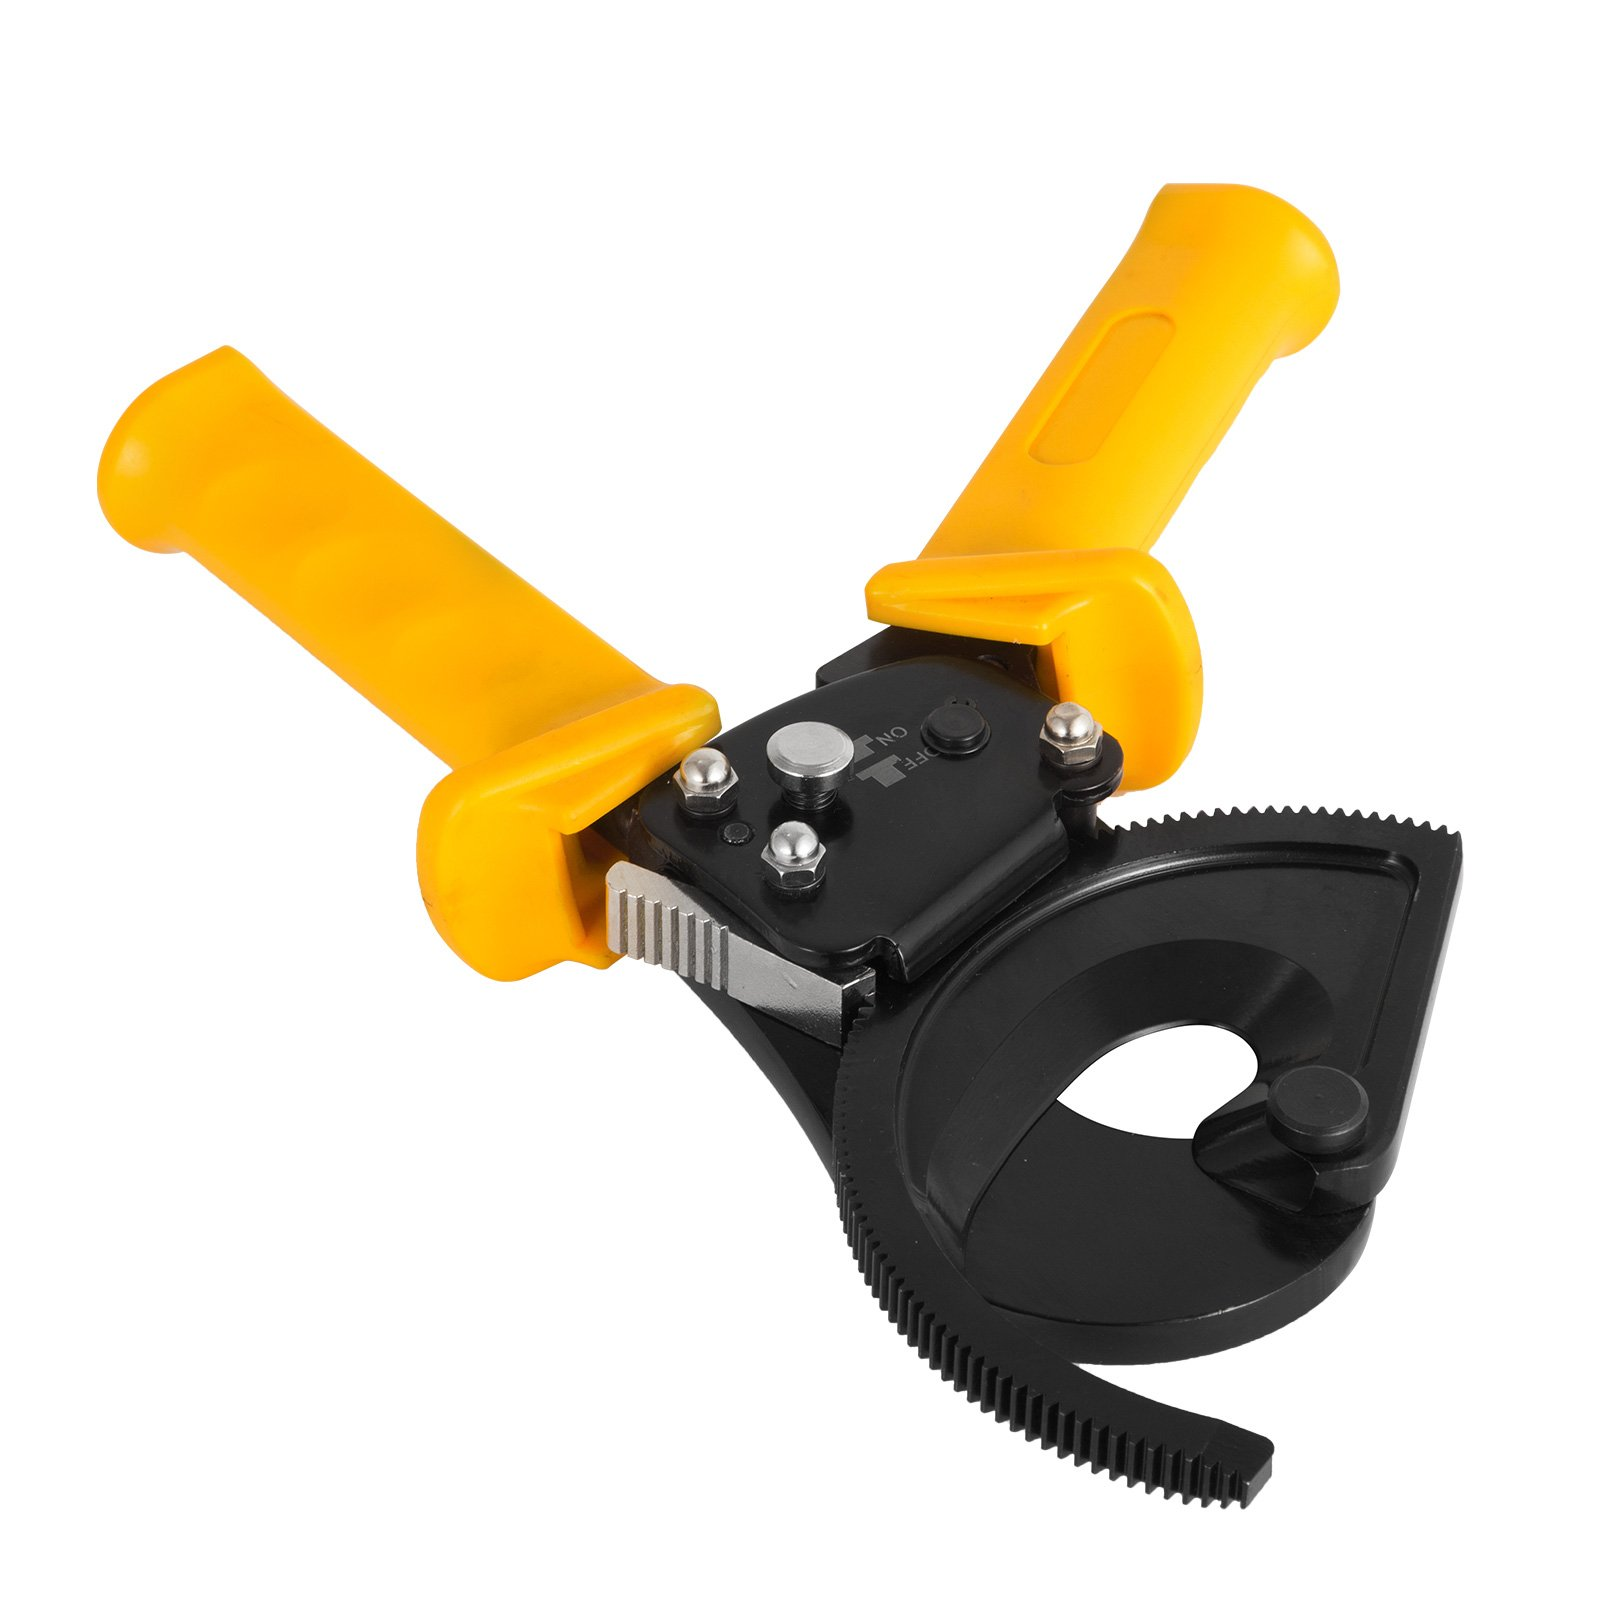 DeEtt Cable Cutter 300mm2 Wire Cutter Ratchet Cable Cutter Mechanical High Carbon Steel For Cutting Copper And Aluminum Cable